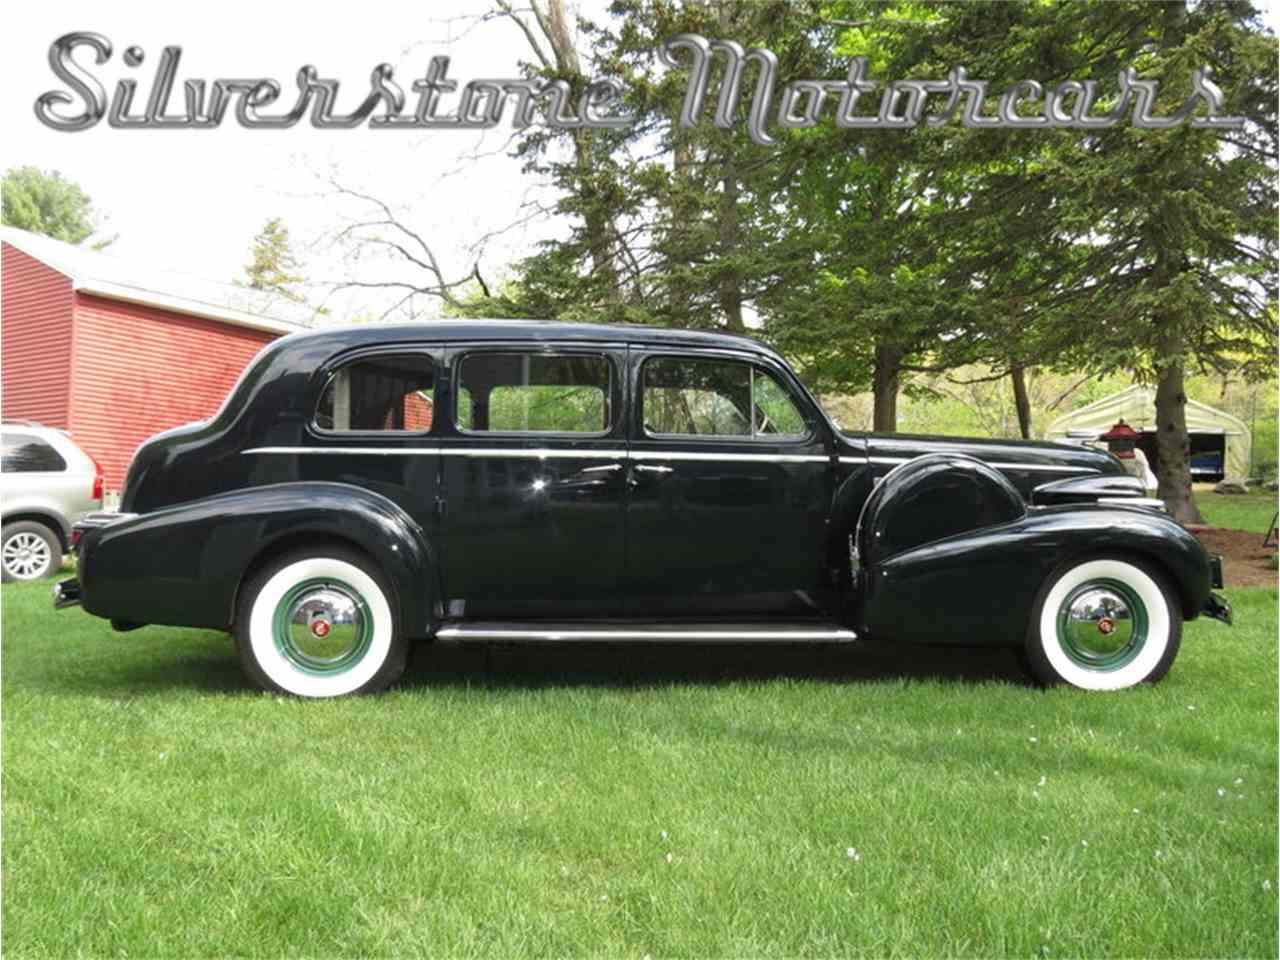 Large Picture of 1939 Cadillac Fleetwood located in North Andover Massachusetts Auction Vehicle - F8HI